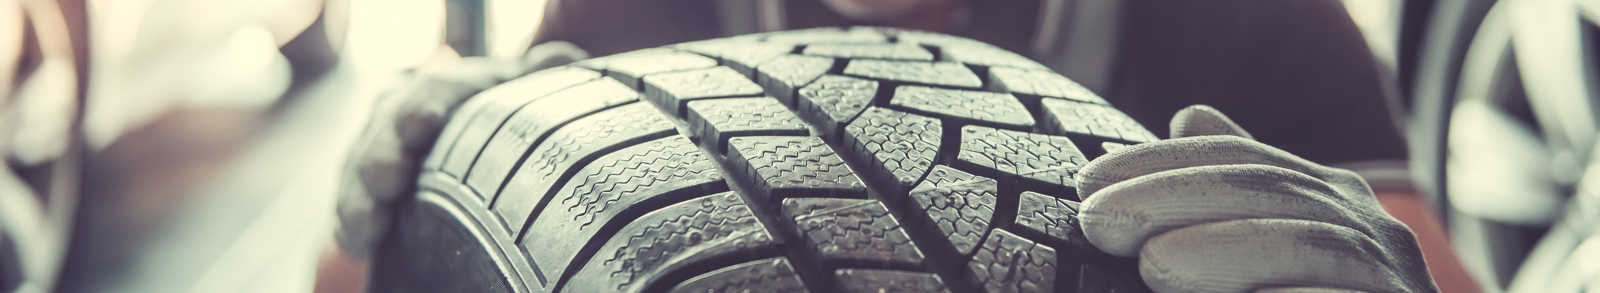 Tyre wear and tear